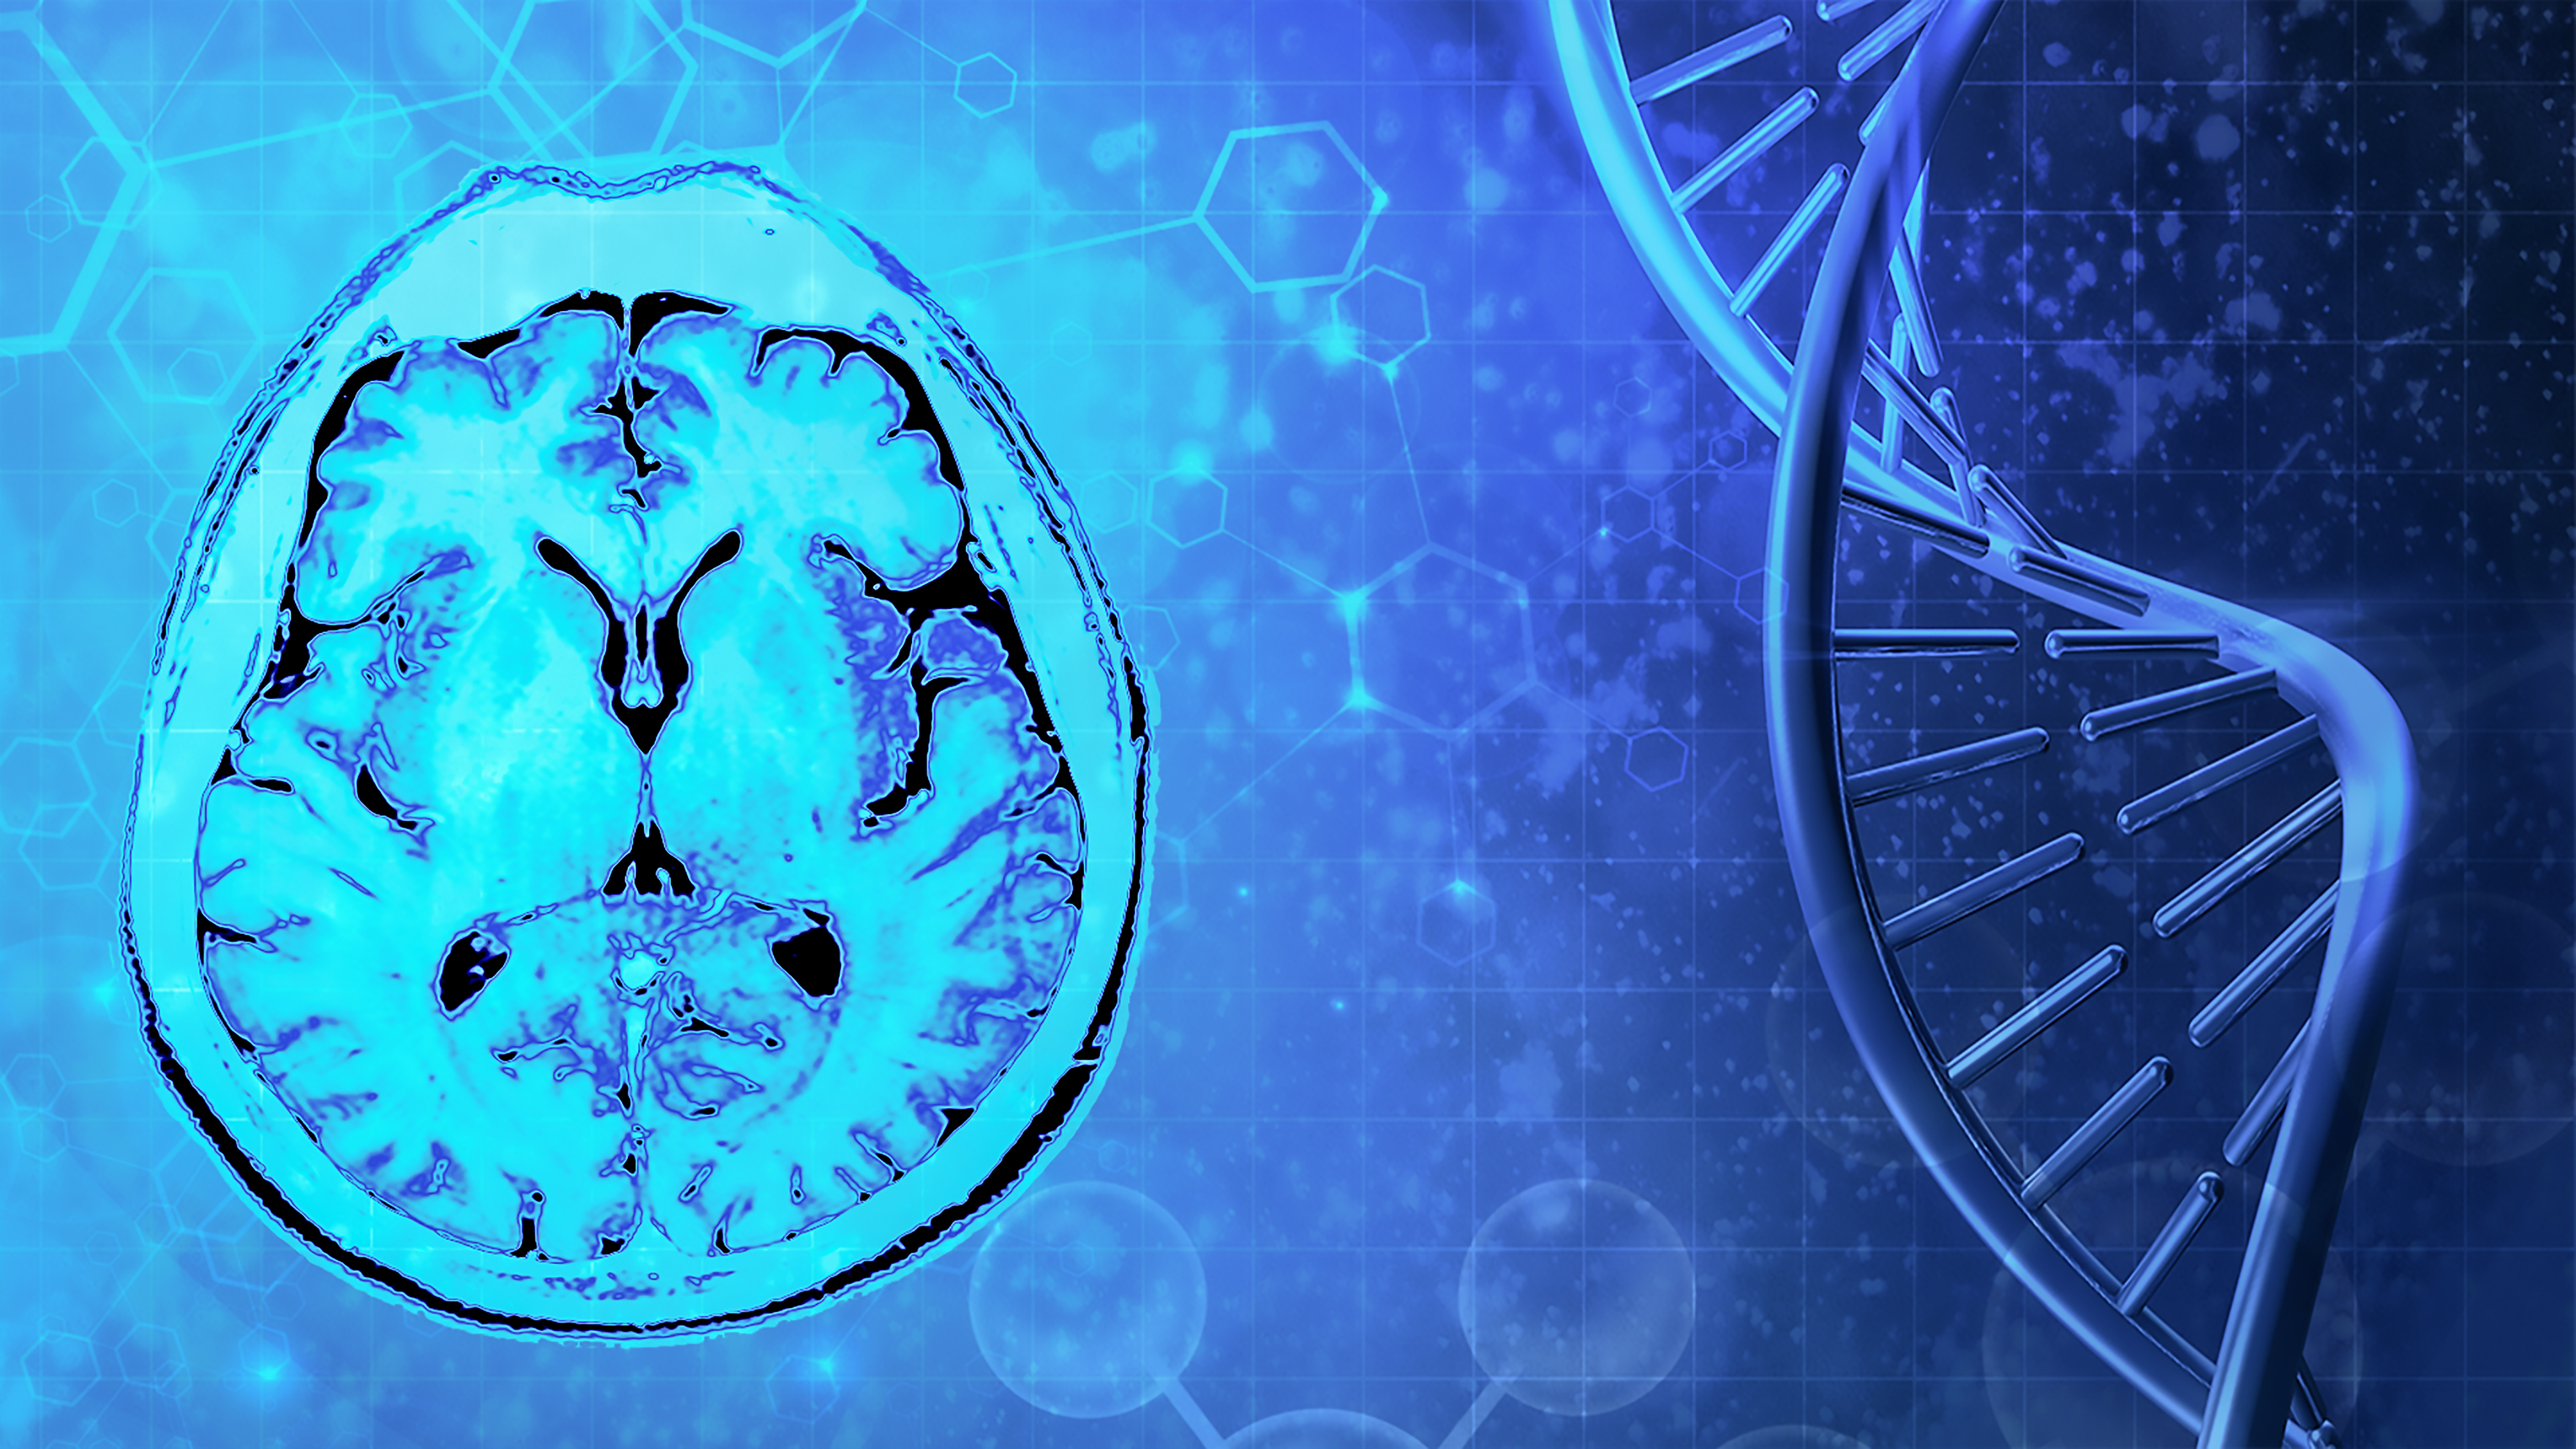 NGS Approaches for Diagnosing Neurological Diseases